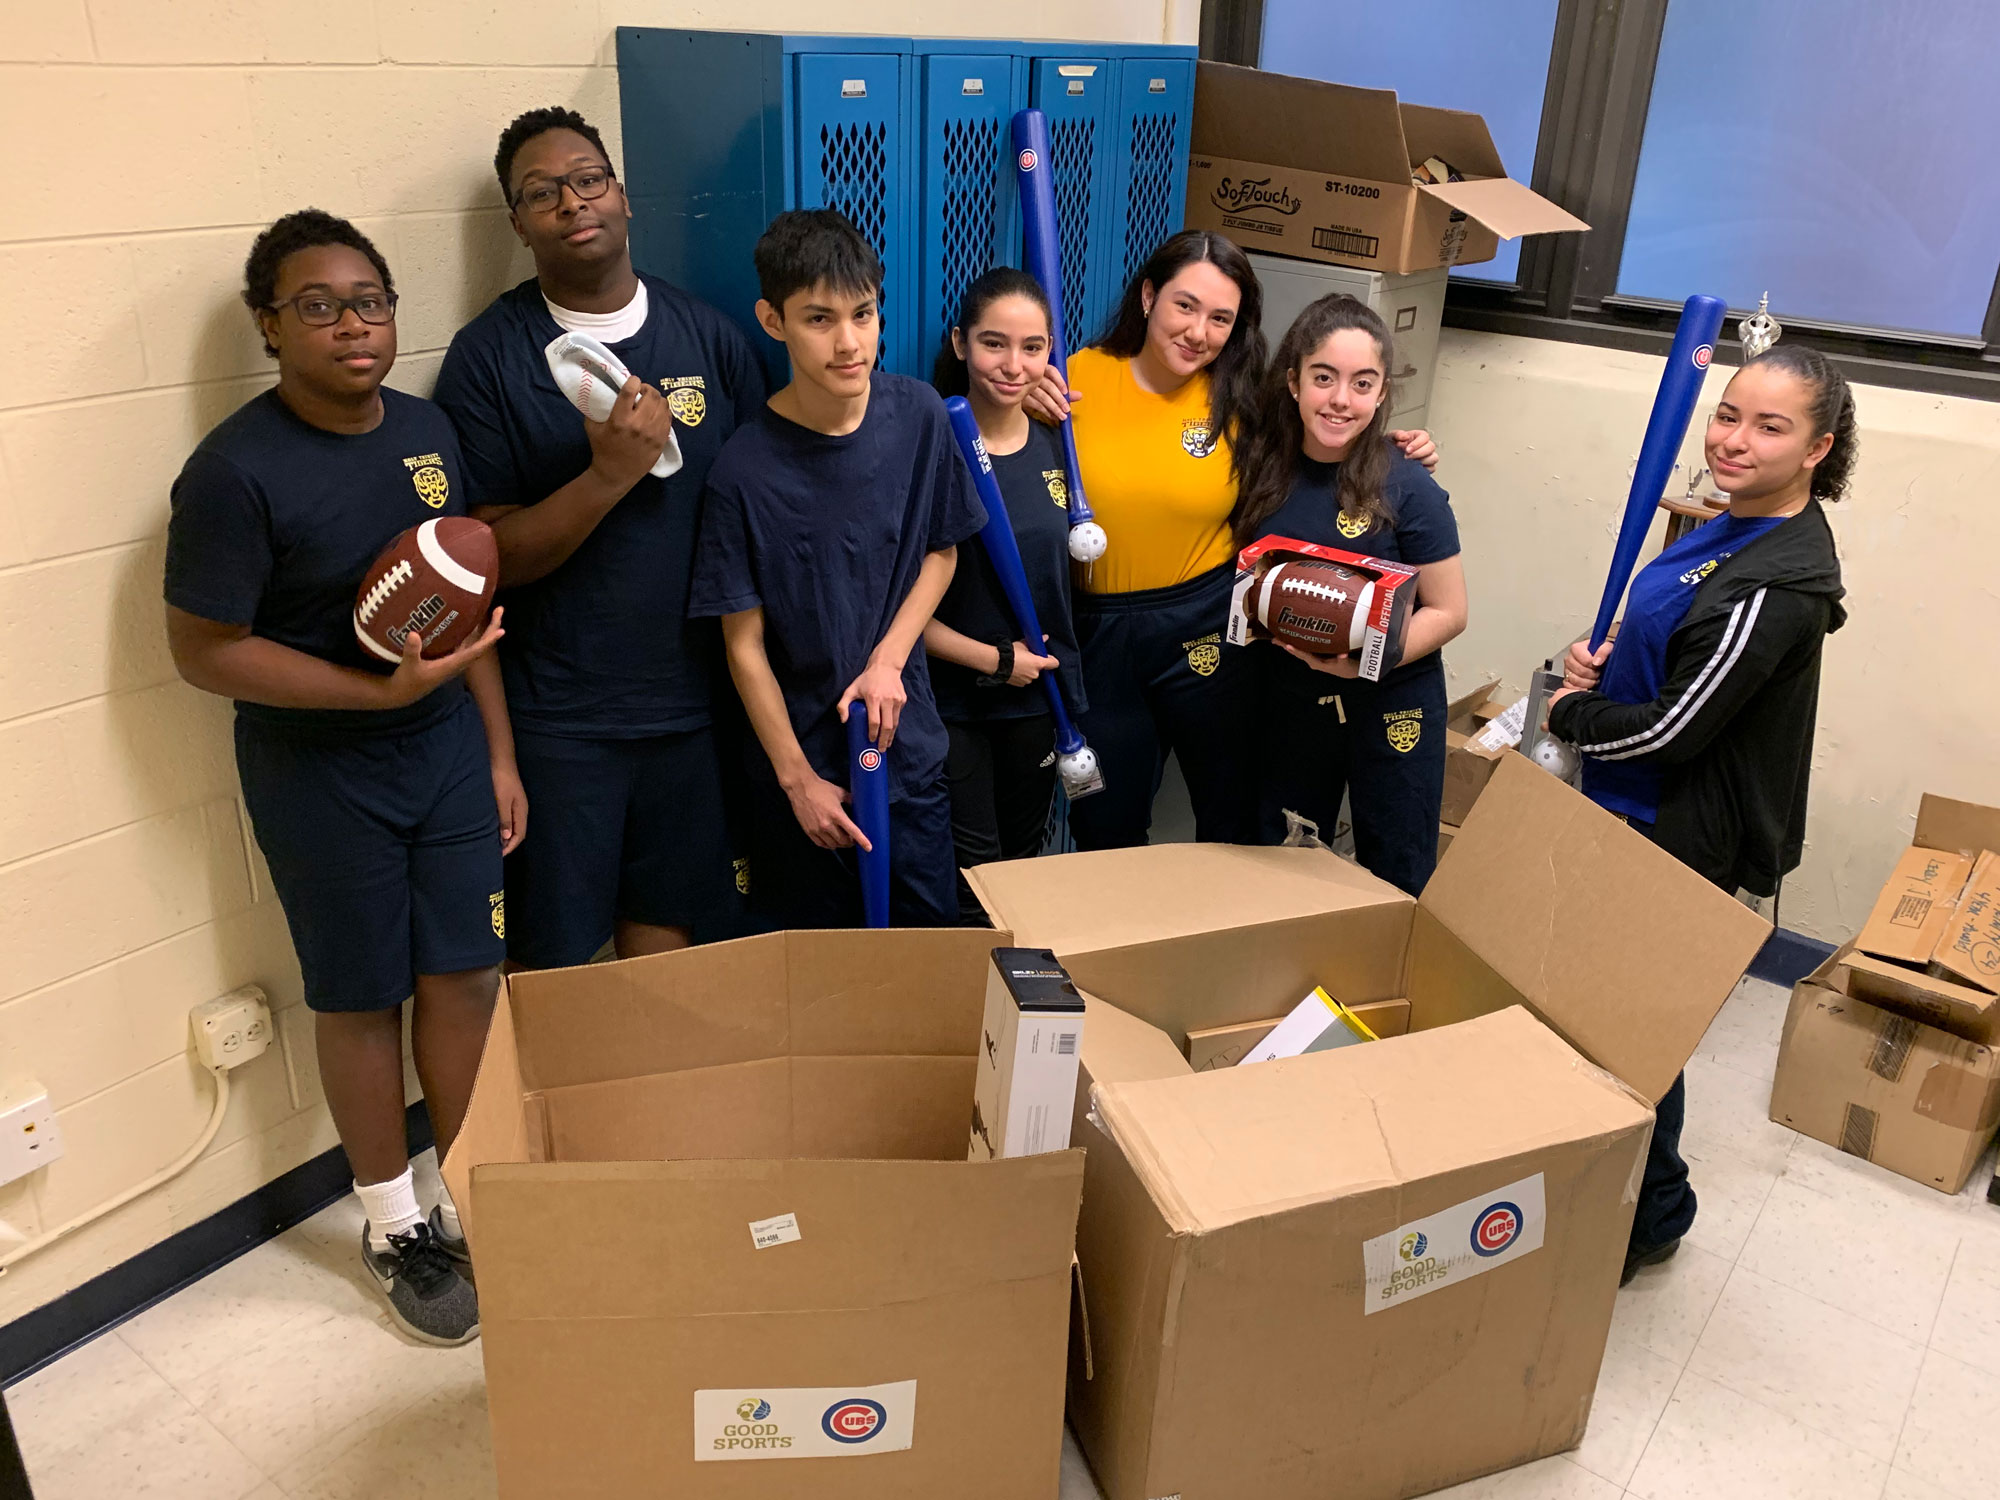 Chicago Cubs, Good Sports Donate to Holy Trinity